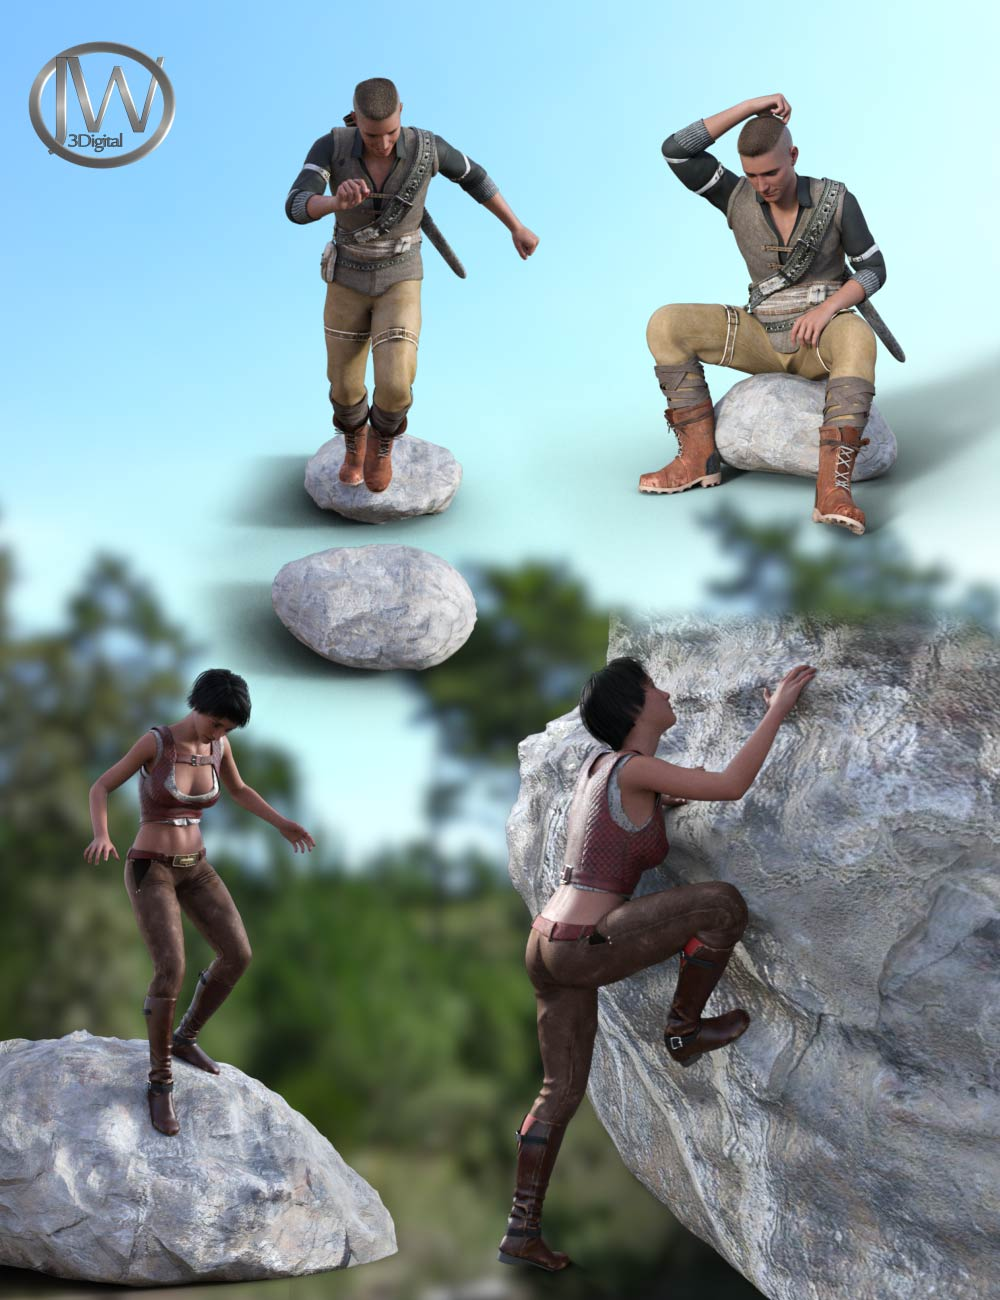 The Rocks Props and Poses for Genesis 8.1 by: JWolf, 3D Models by Daz 3D